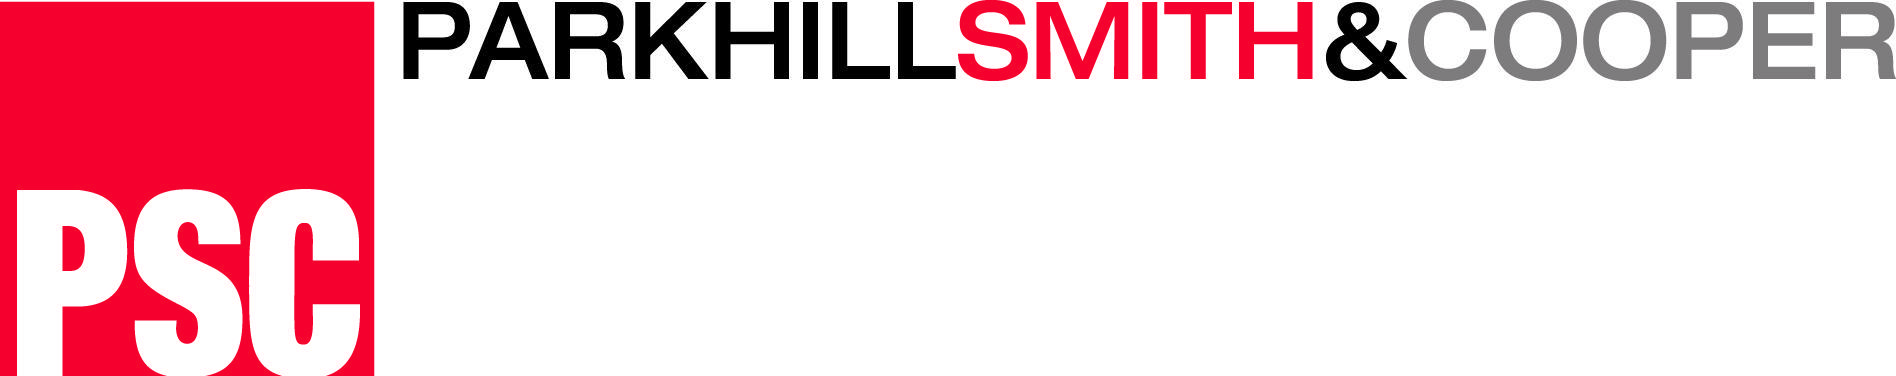 Parkhill Smith & Cooper Logo